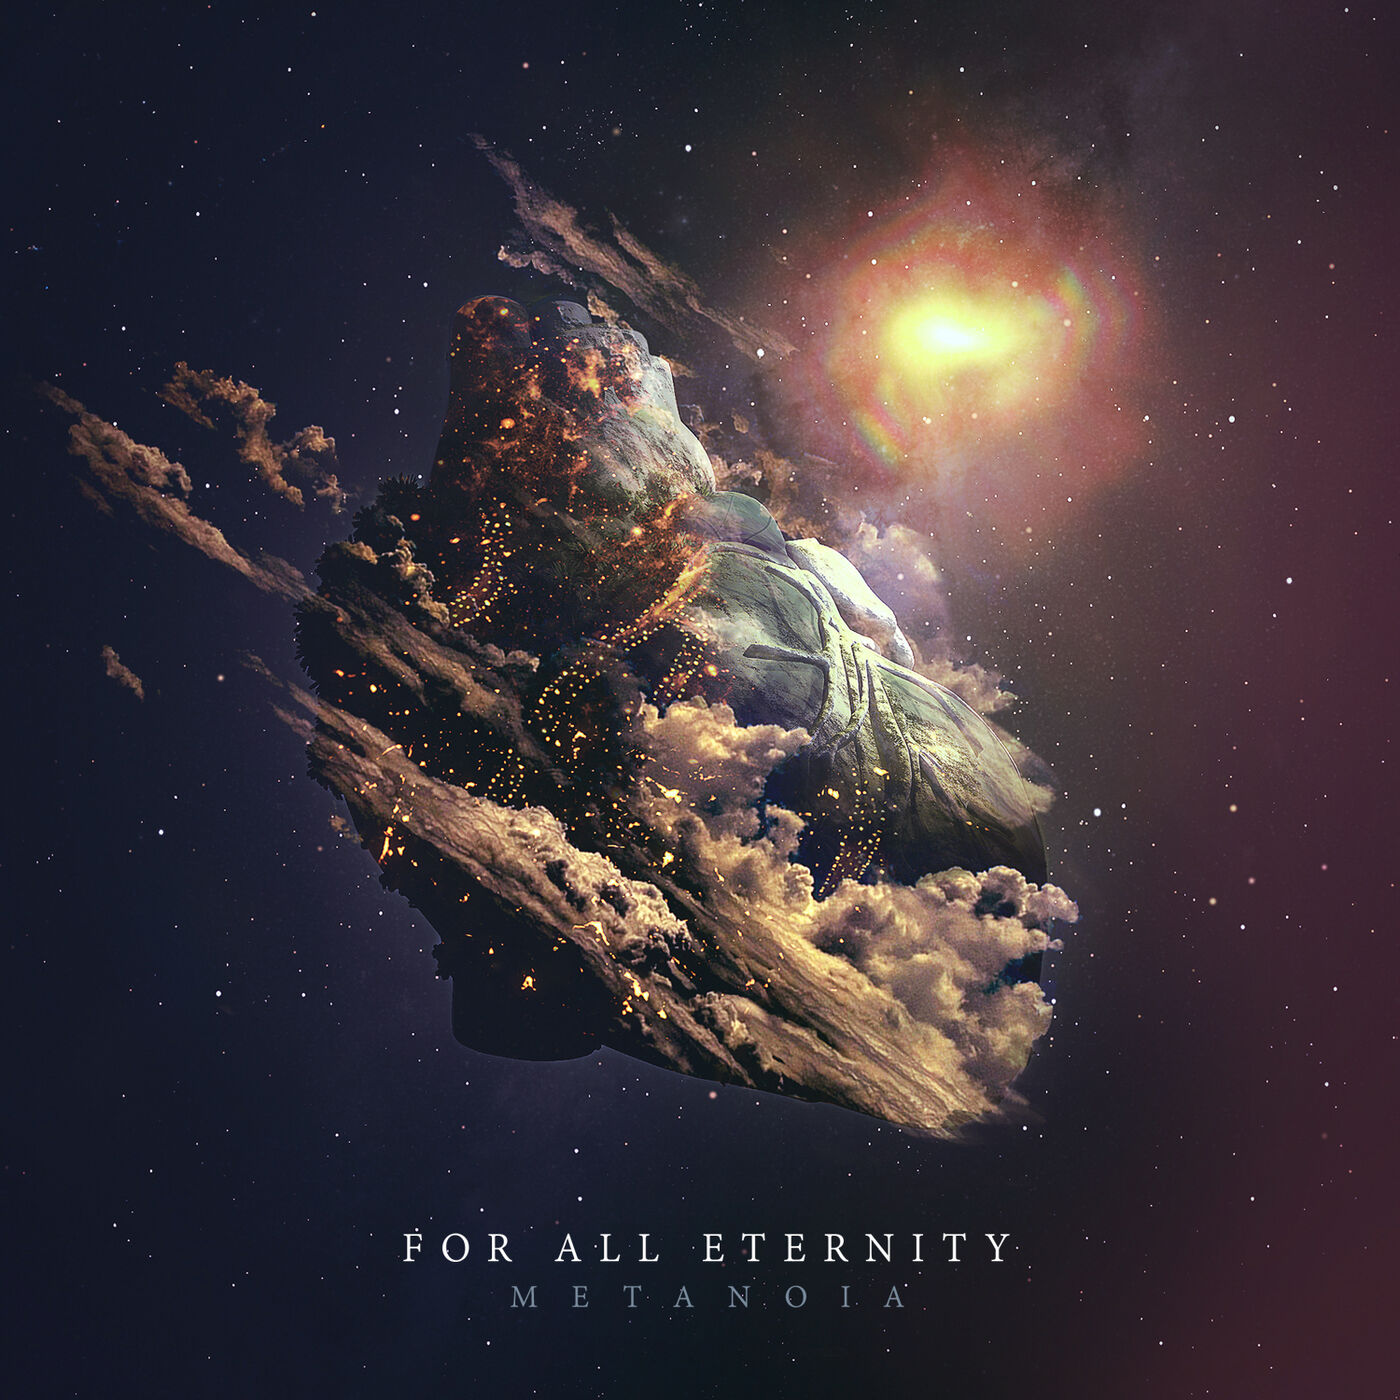 For All Eternity - Metanoia (2015)